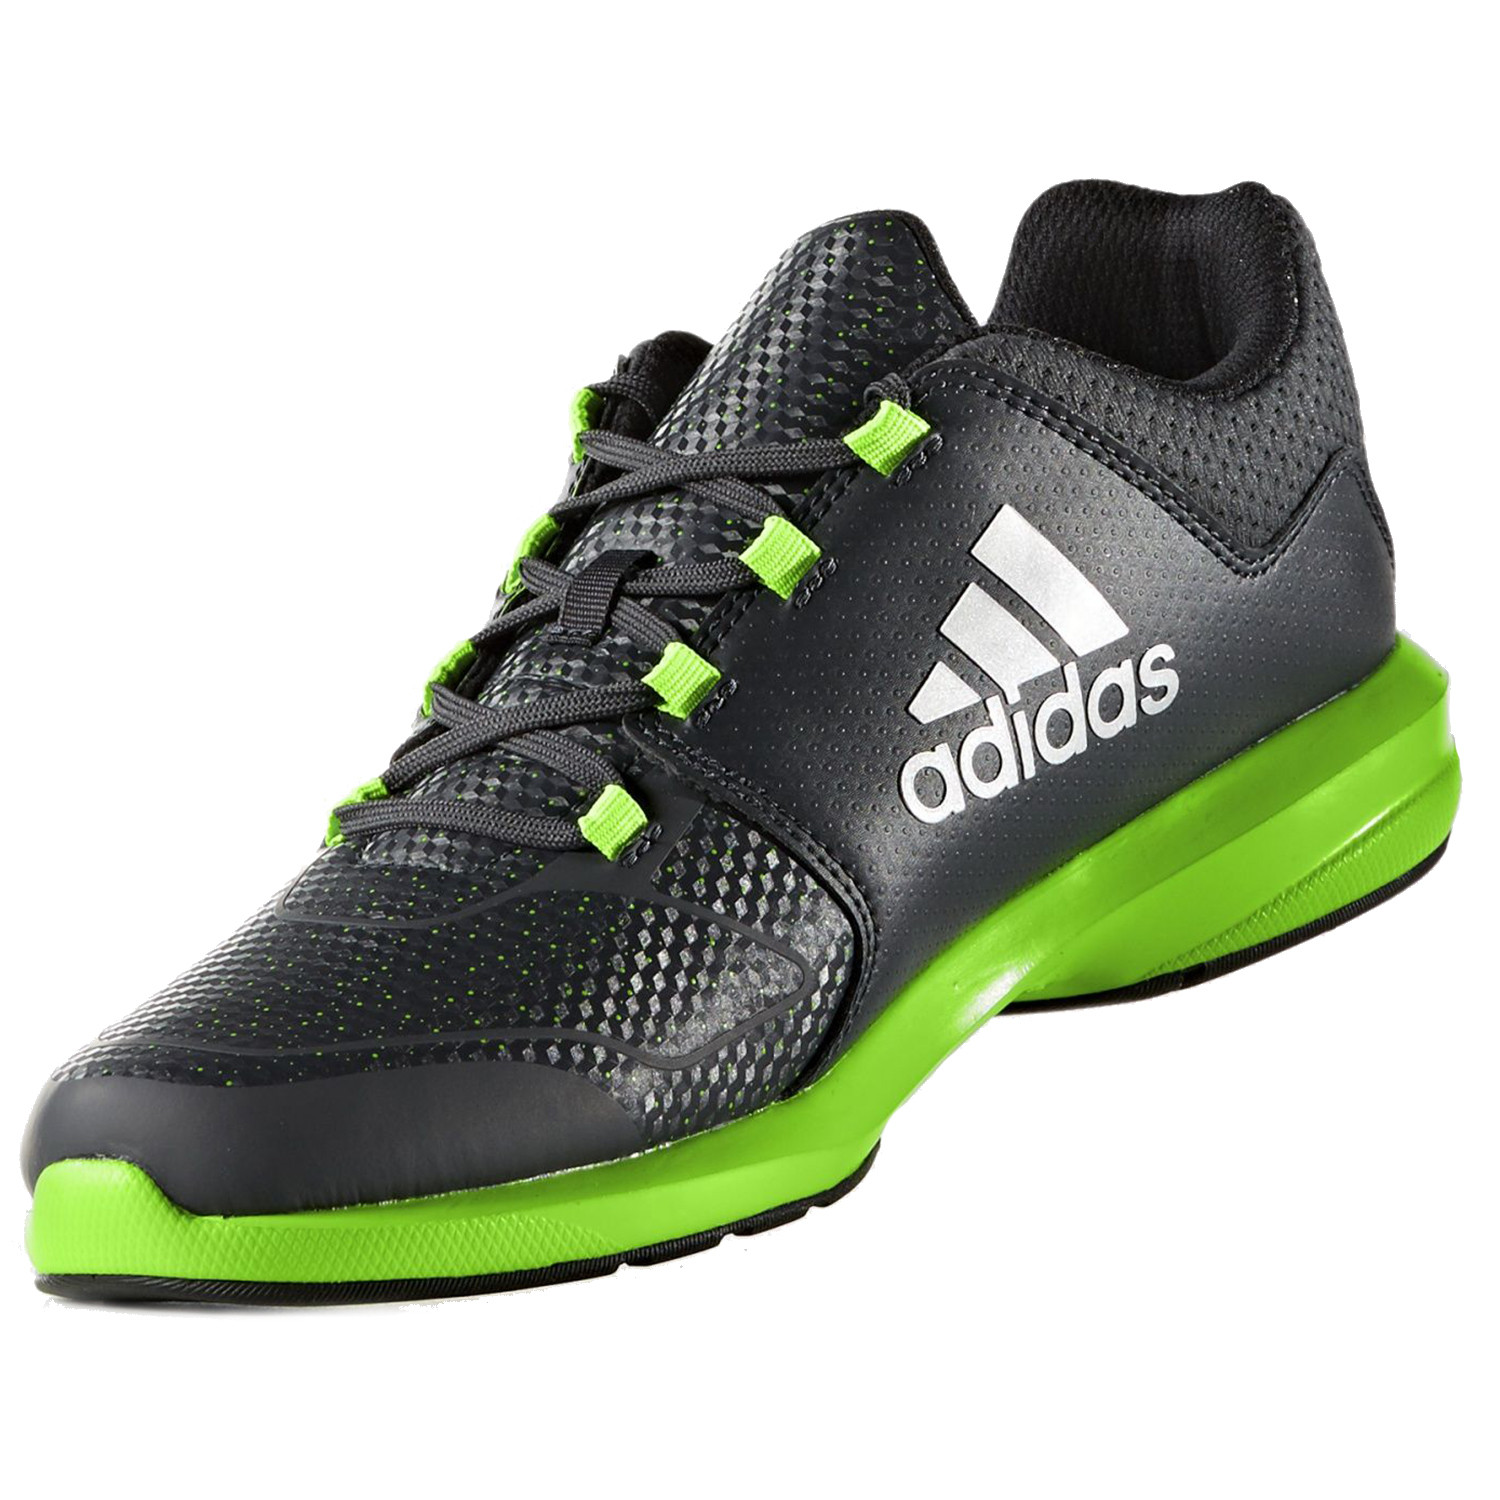 messi k chaussure gar on pas cher baskets basses gar on adidas discount. Black Bedroom Furniture Sets. Home Design Ideas